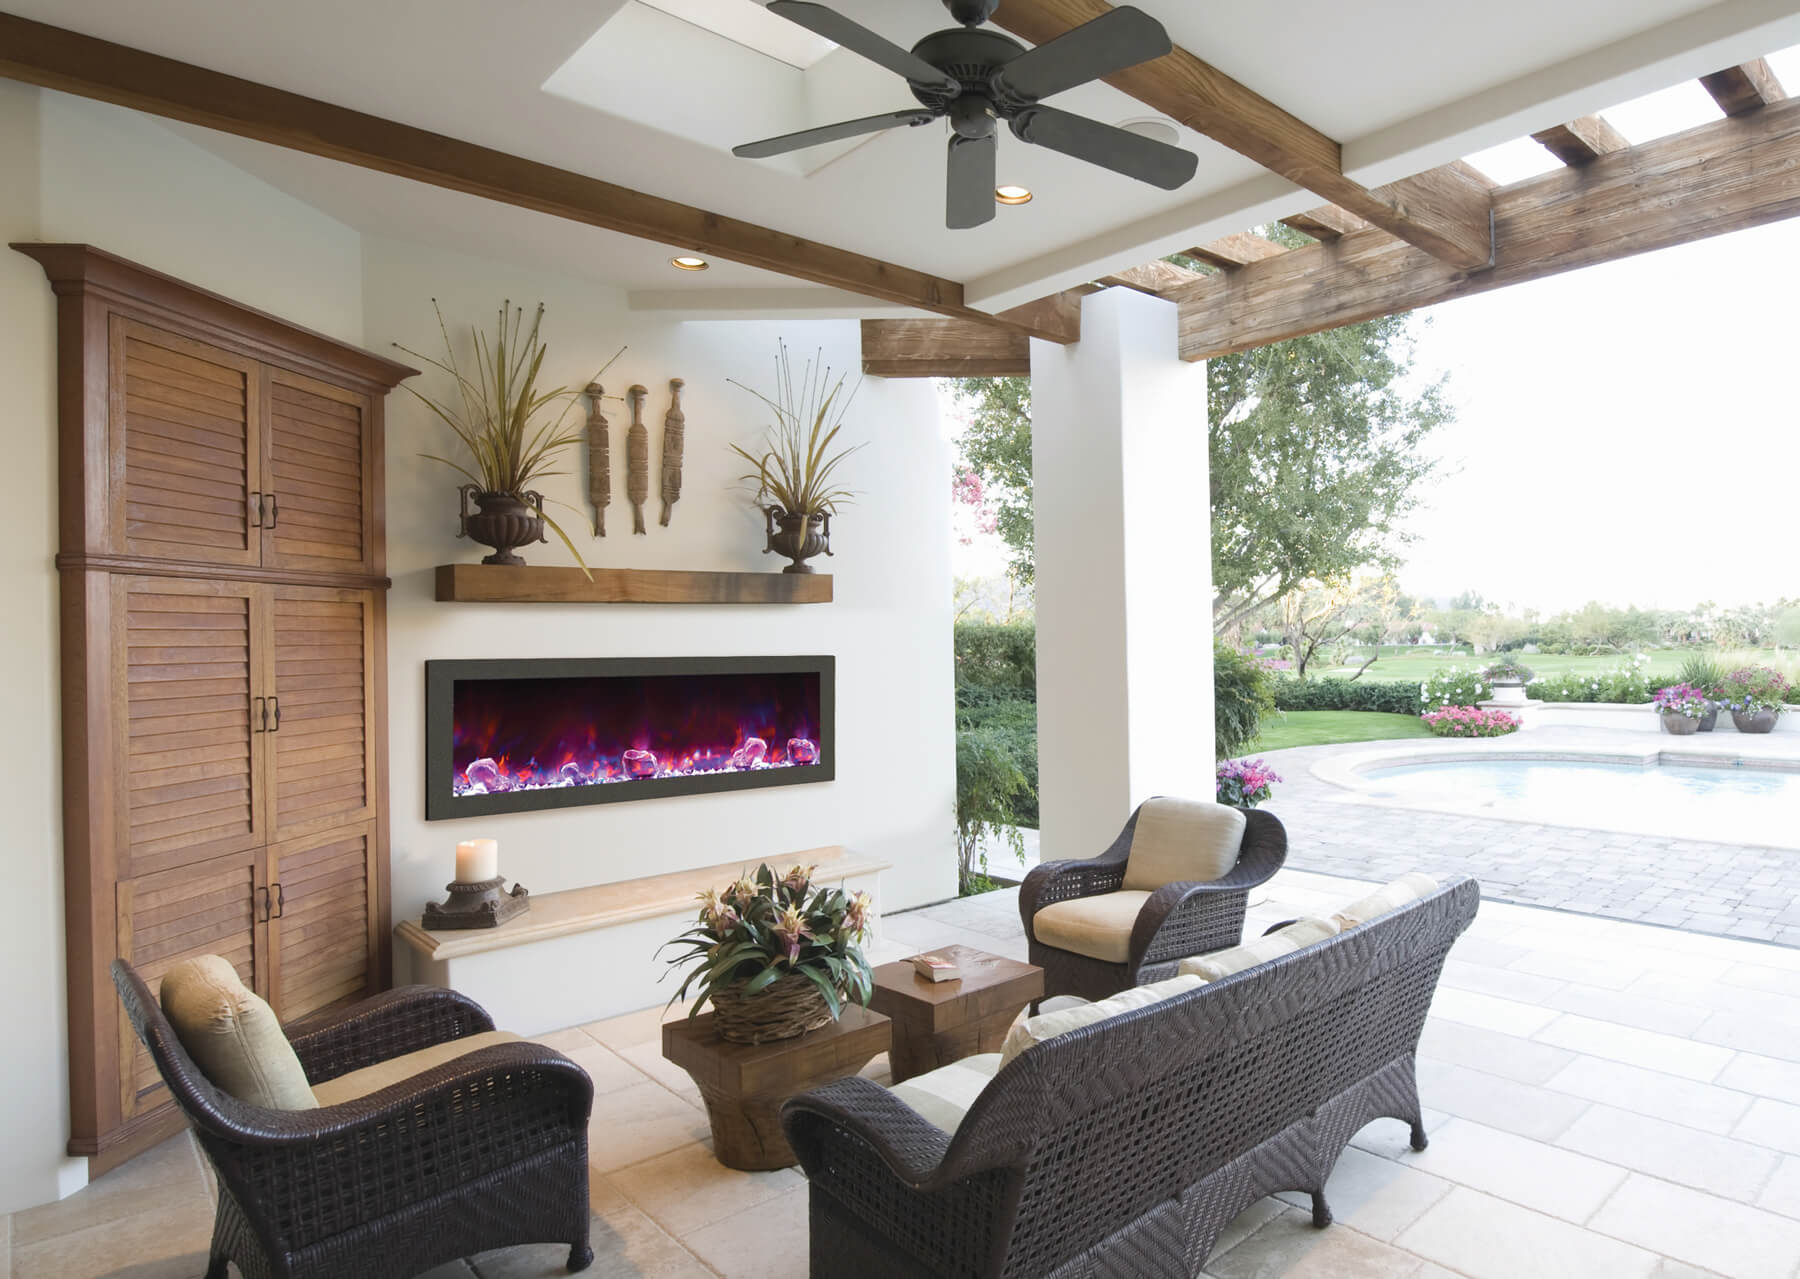 long outdoor electric fireplace set into wall